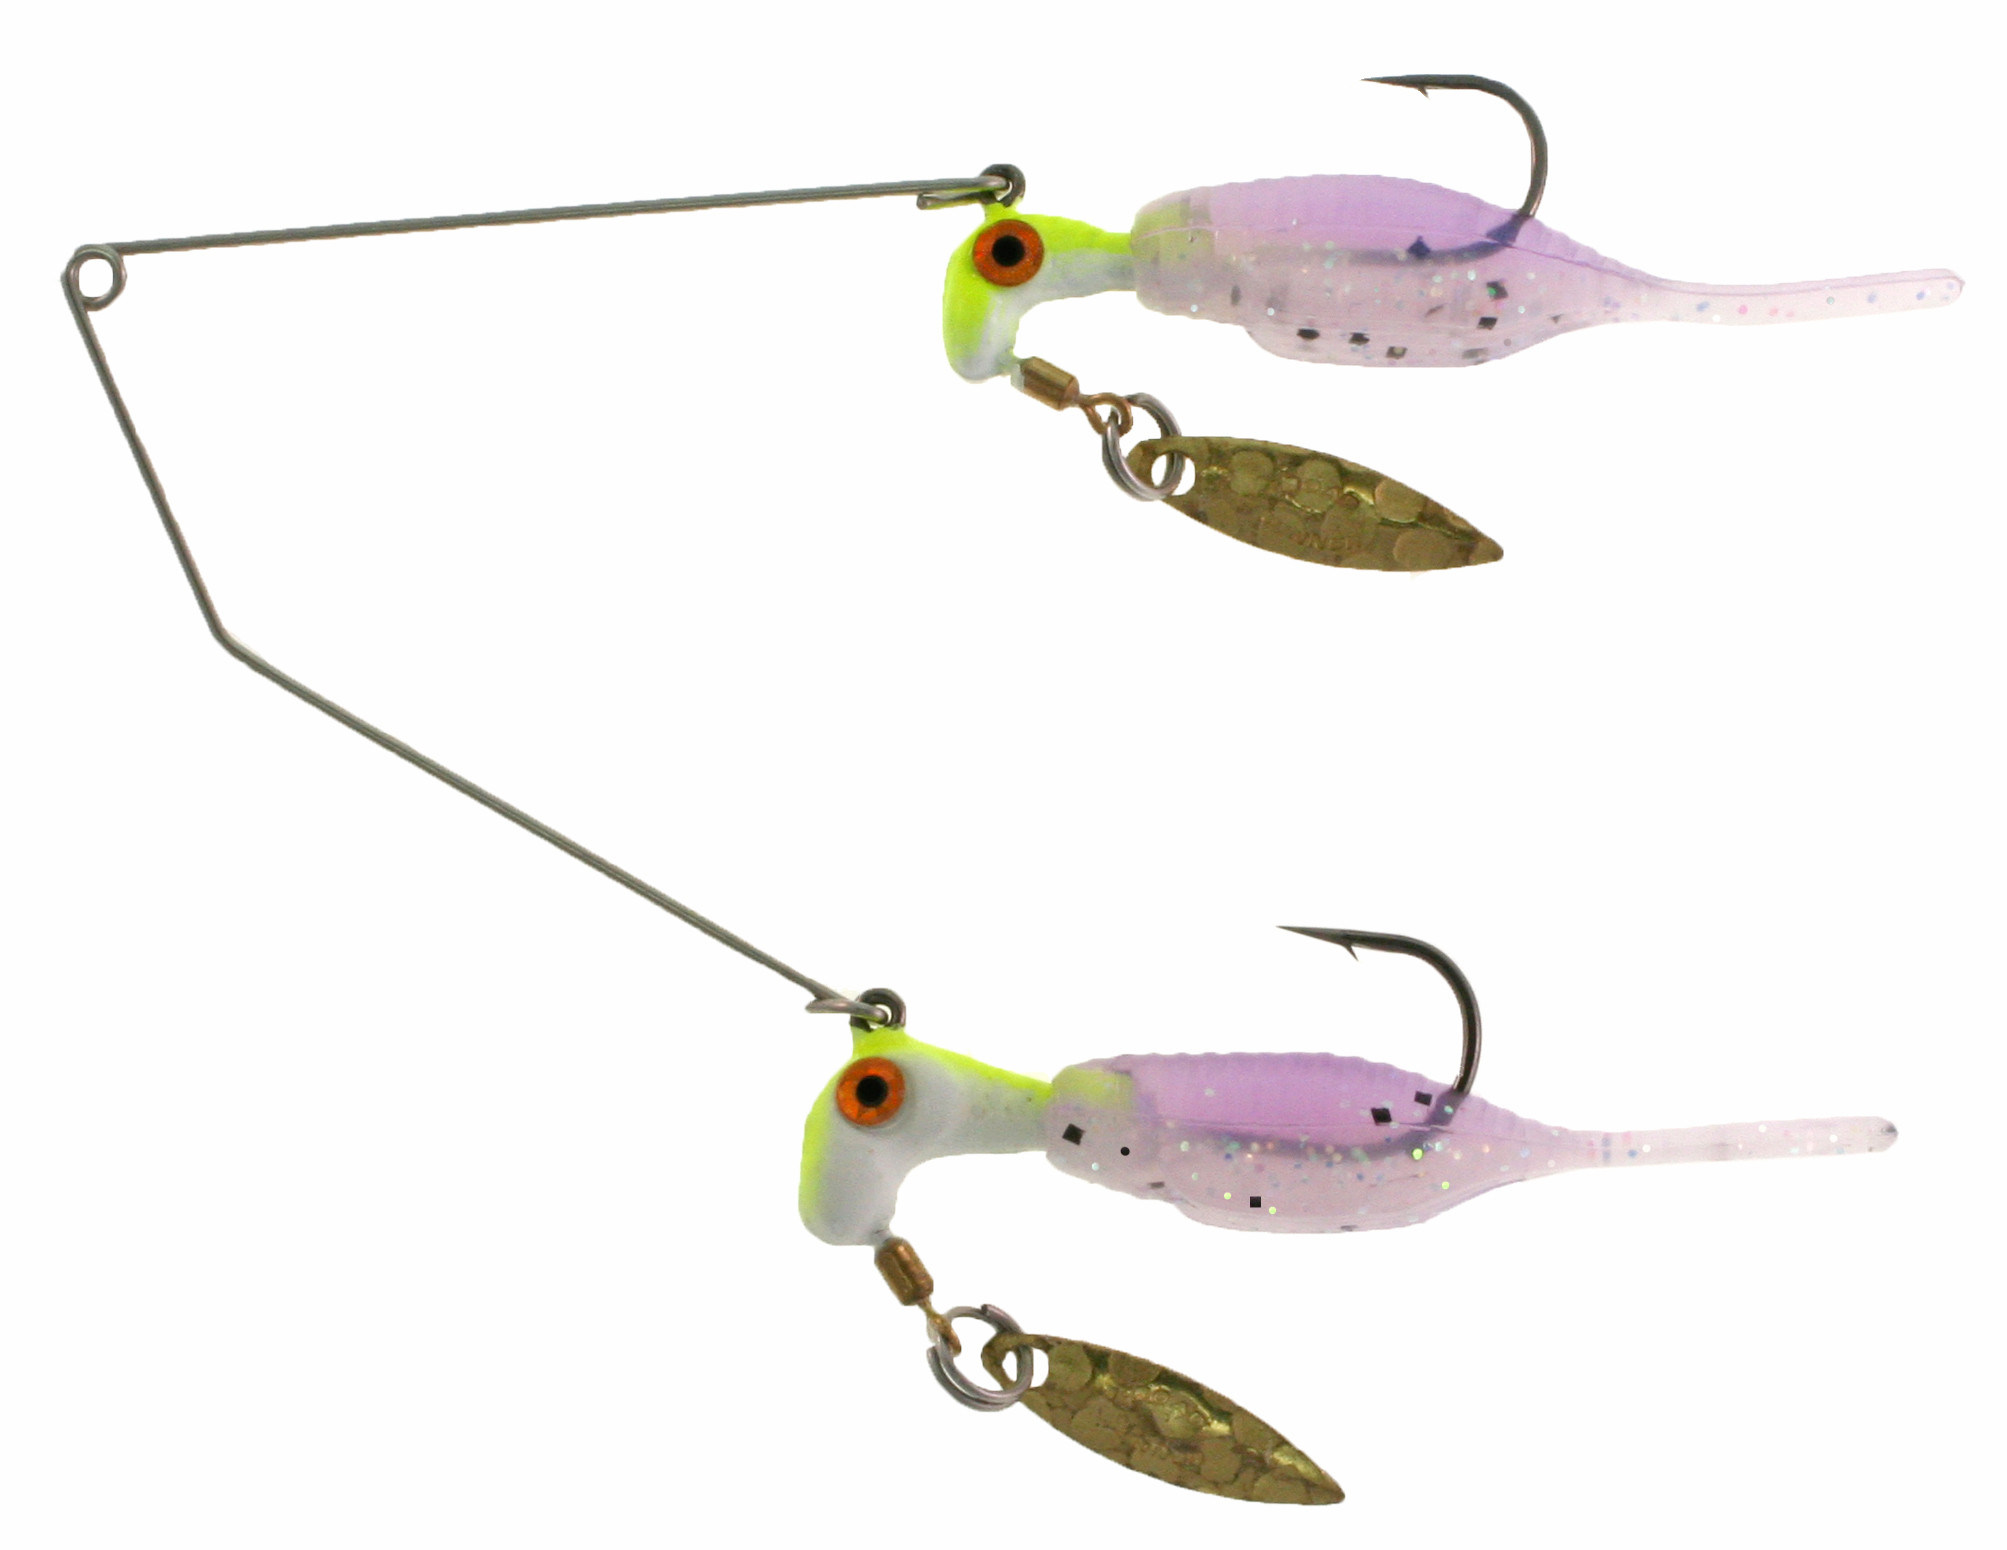 RBB15-533 Reality Shad Buffet Rig Nanner Puddin